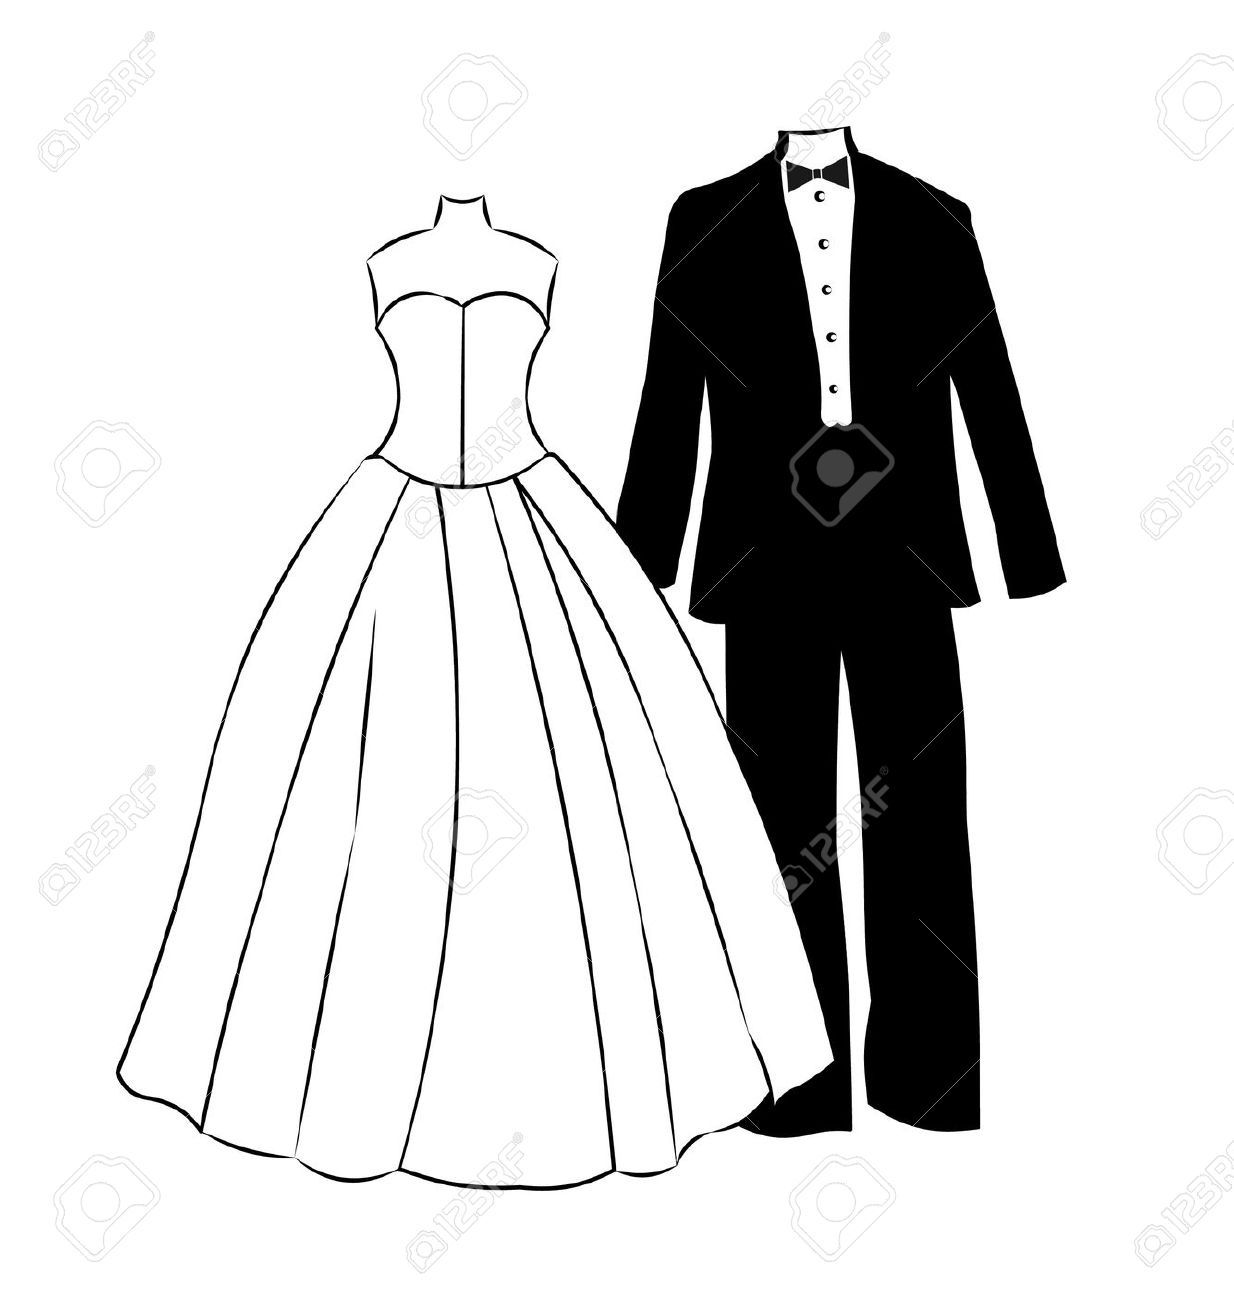 Wedding Dress And Tuxedo Clipart.